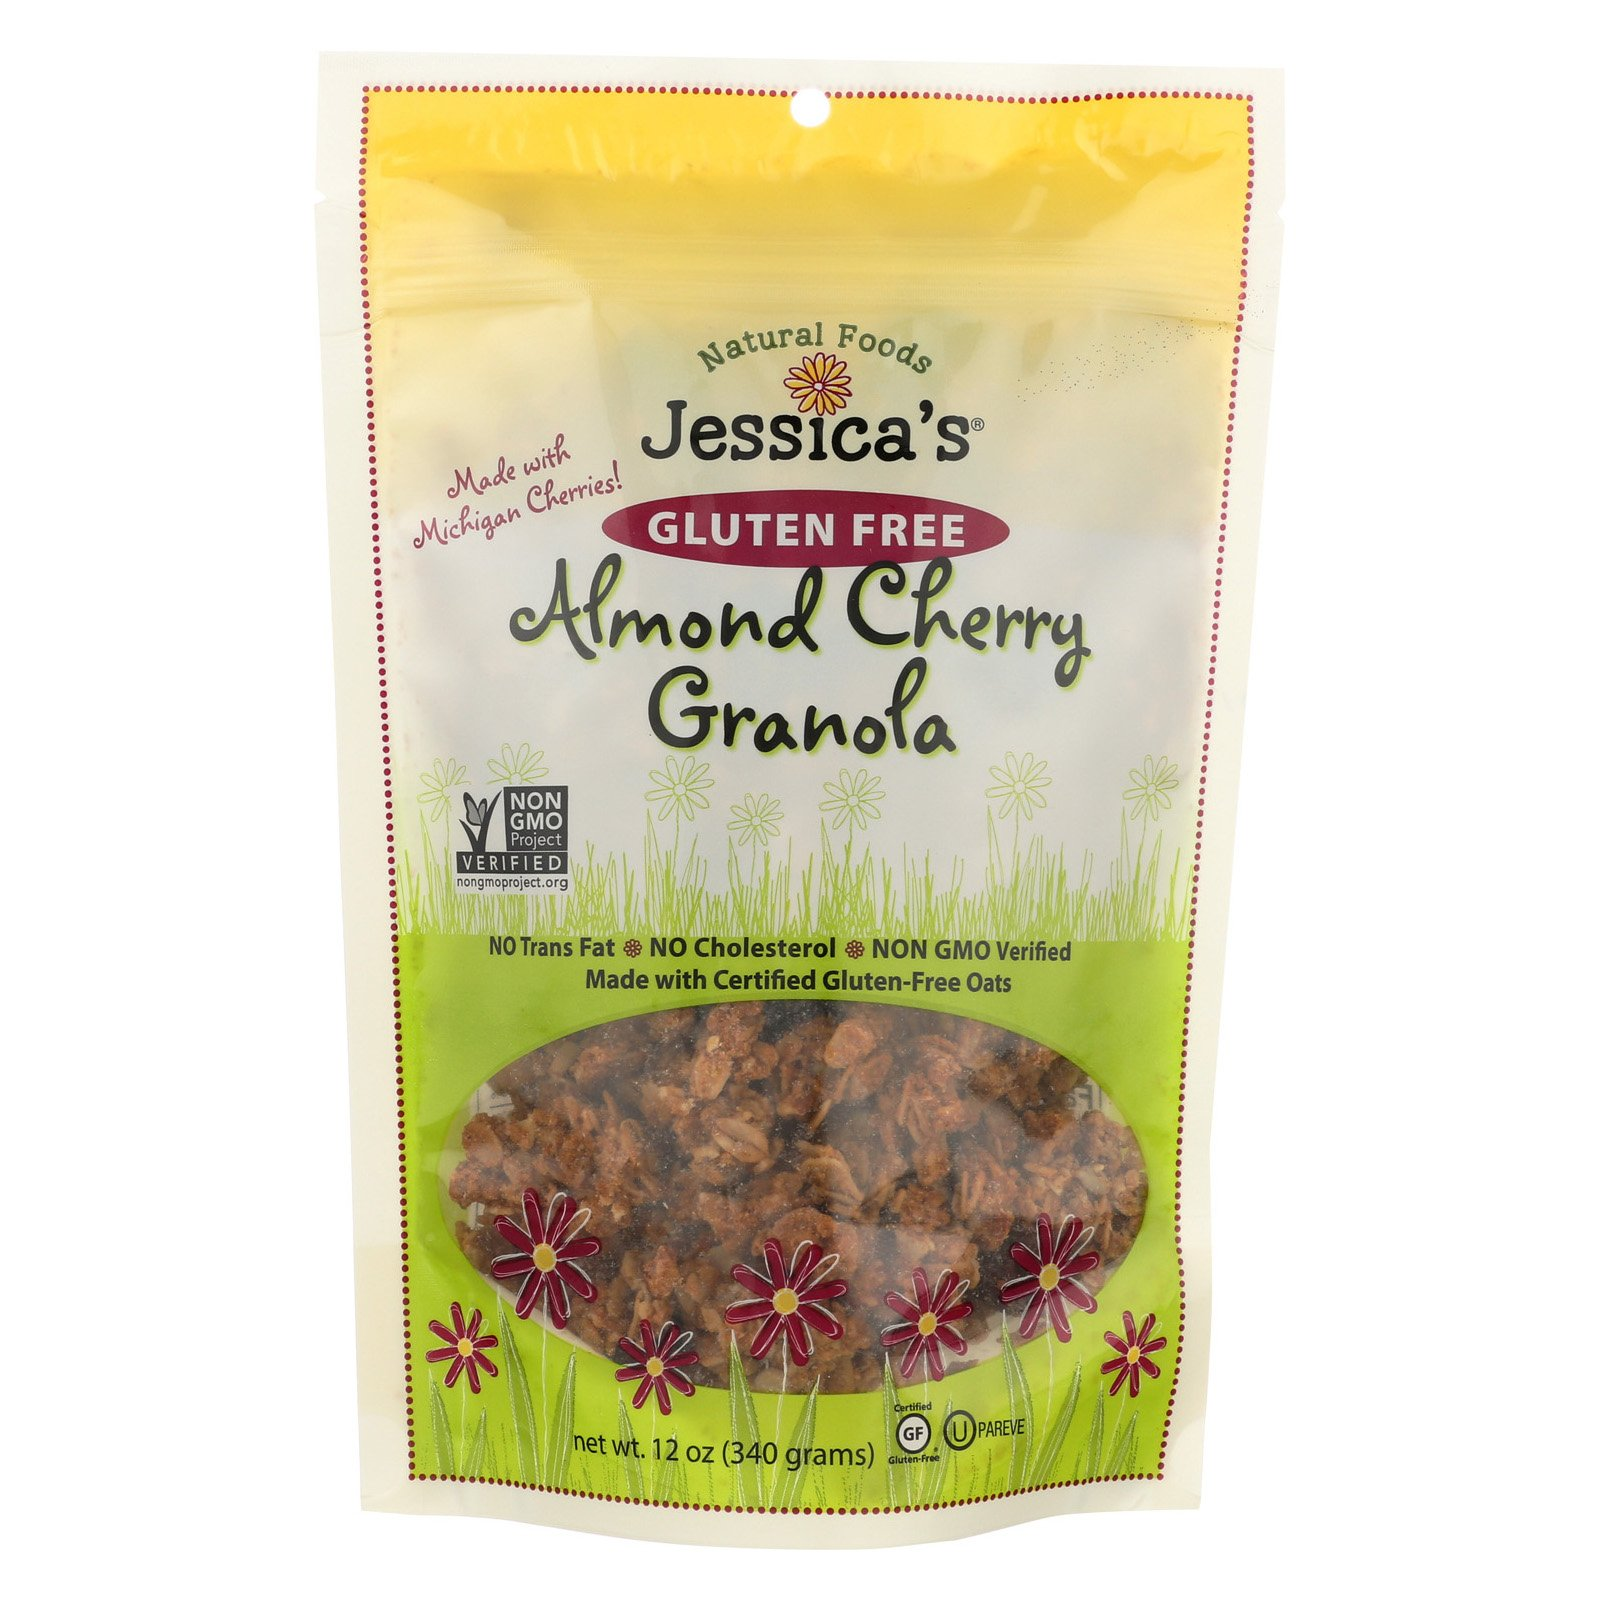 Jessica's Natural Foods Granola - Almond Cherry - Case of 12 - 12 oz. by Jessica's Natural Foods